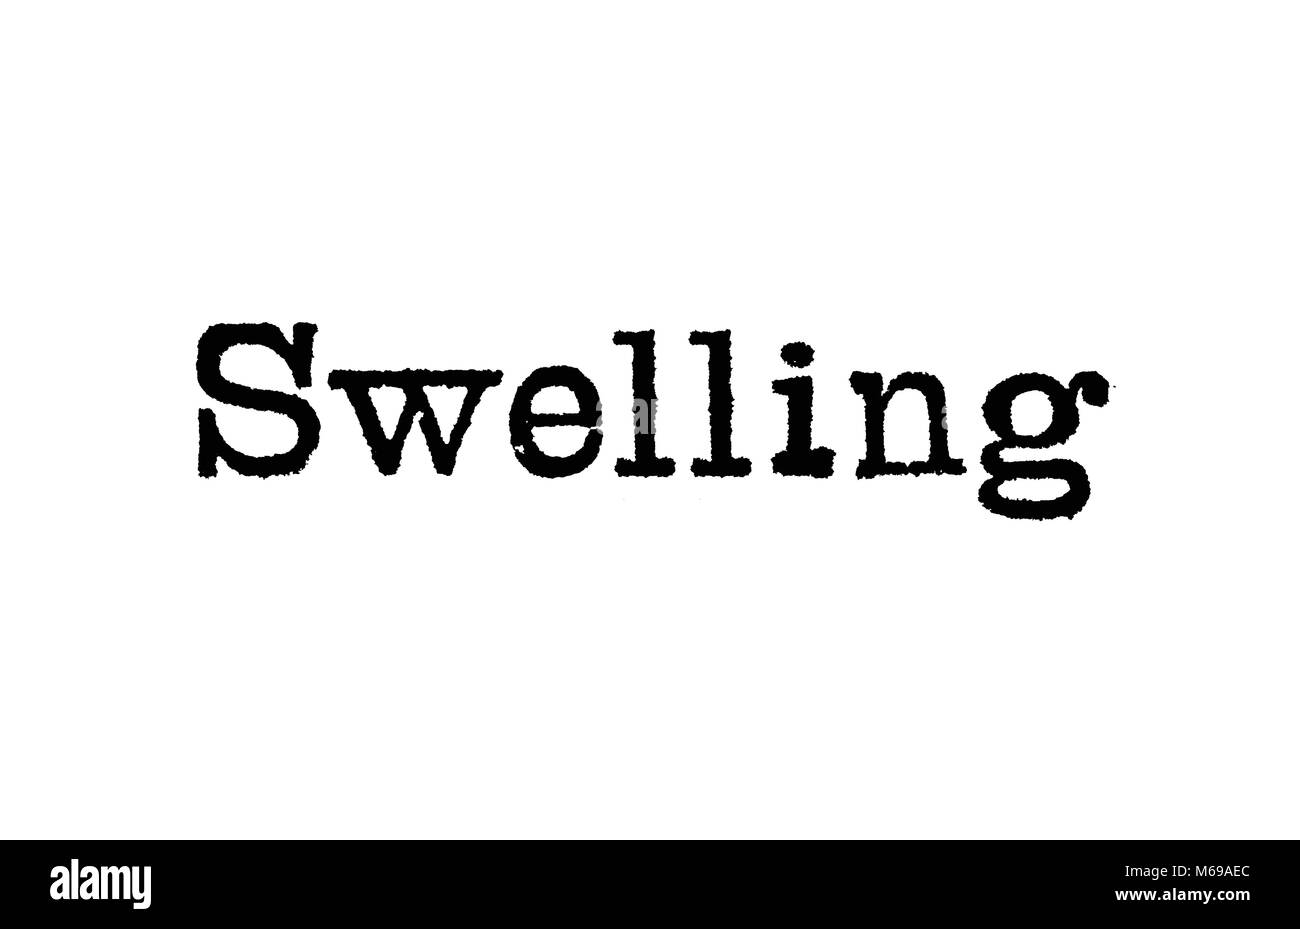 The word Swelling from a typewriter on a white background - Stock Image